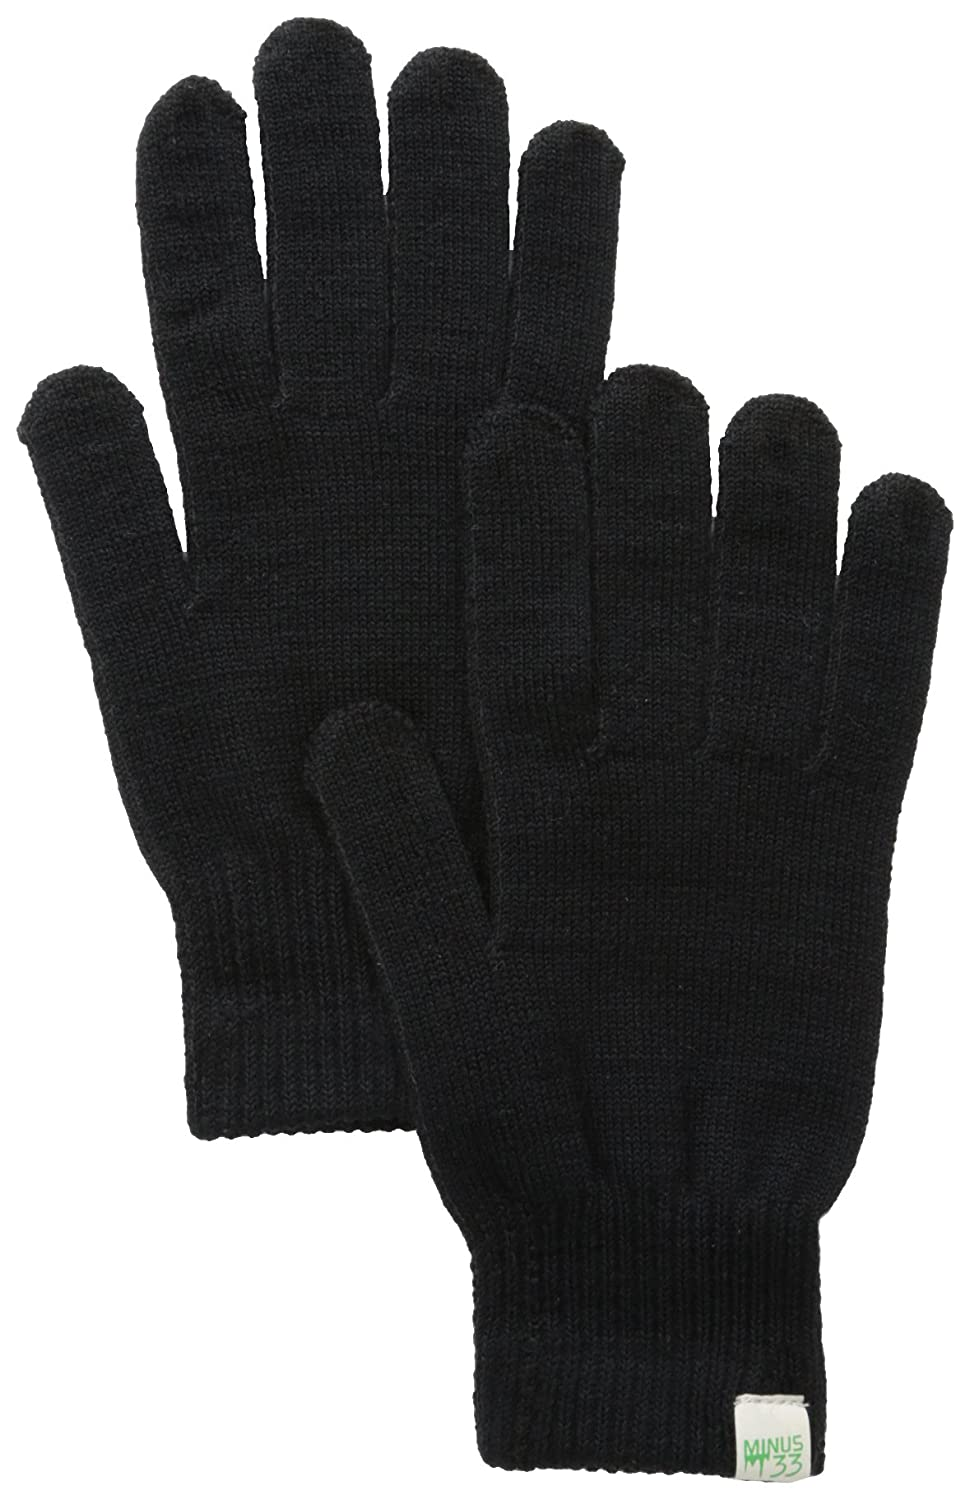 Leather work gloves with wool lining - Leather Work Gloves With Wool Lining 34